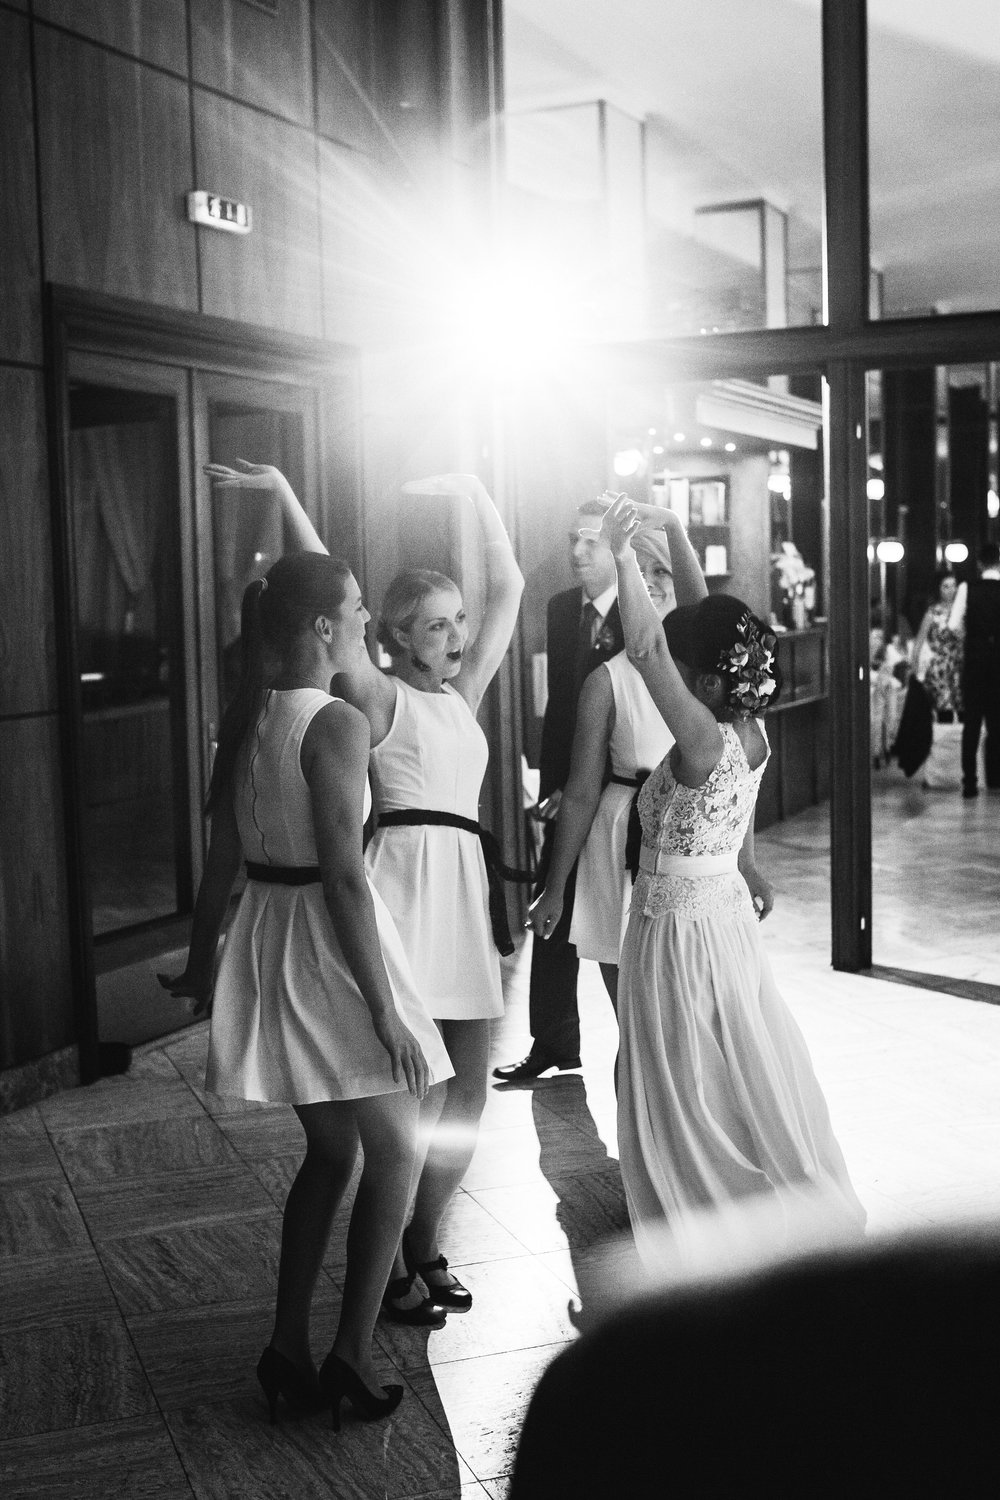 destination-wedding-photographer-slovakia-bratislava-bw-documentary-style-dancing-bridesmaids.jpg